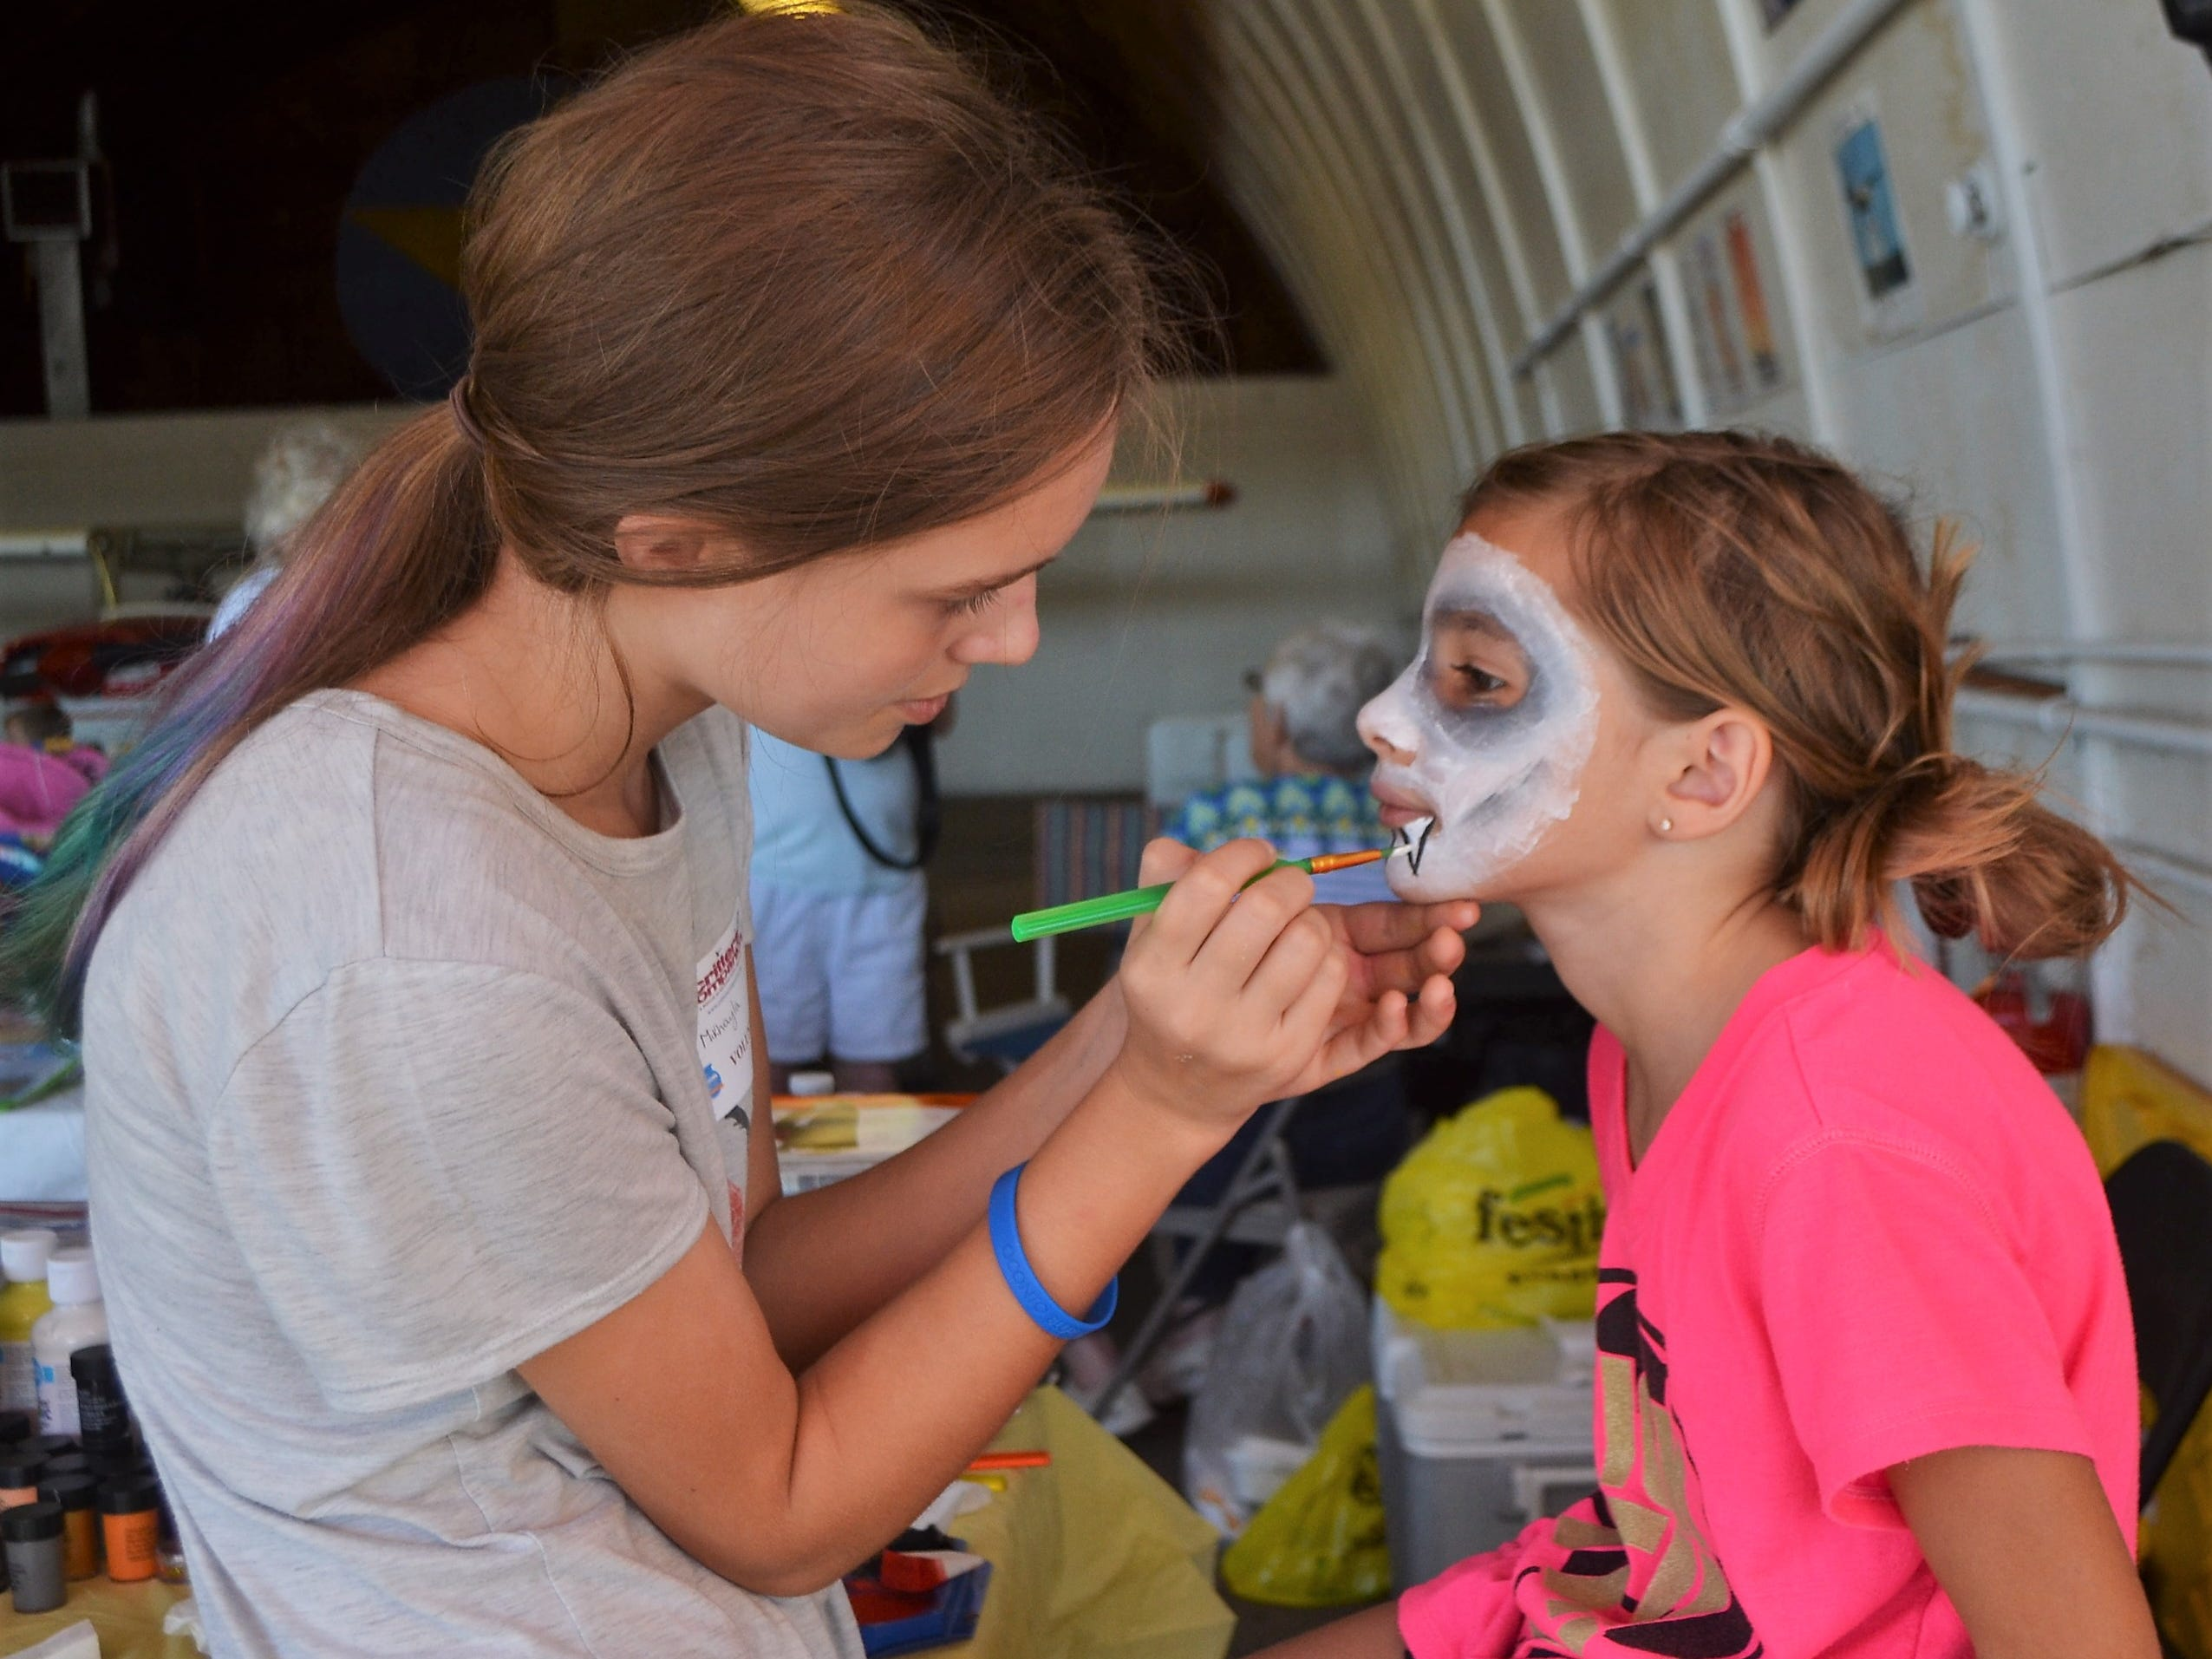 Mikhayla Steele of Oconto paints a vampire face onto Alia Comins, 8, of Lena at the Critter Companions booth at the Oconto Fly-in, Car & Tractor Show on Sept. 15 at the Oconto-J. Douglas Bake Municipal Airport.